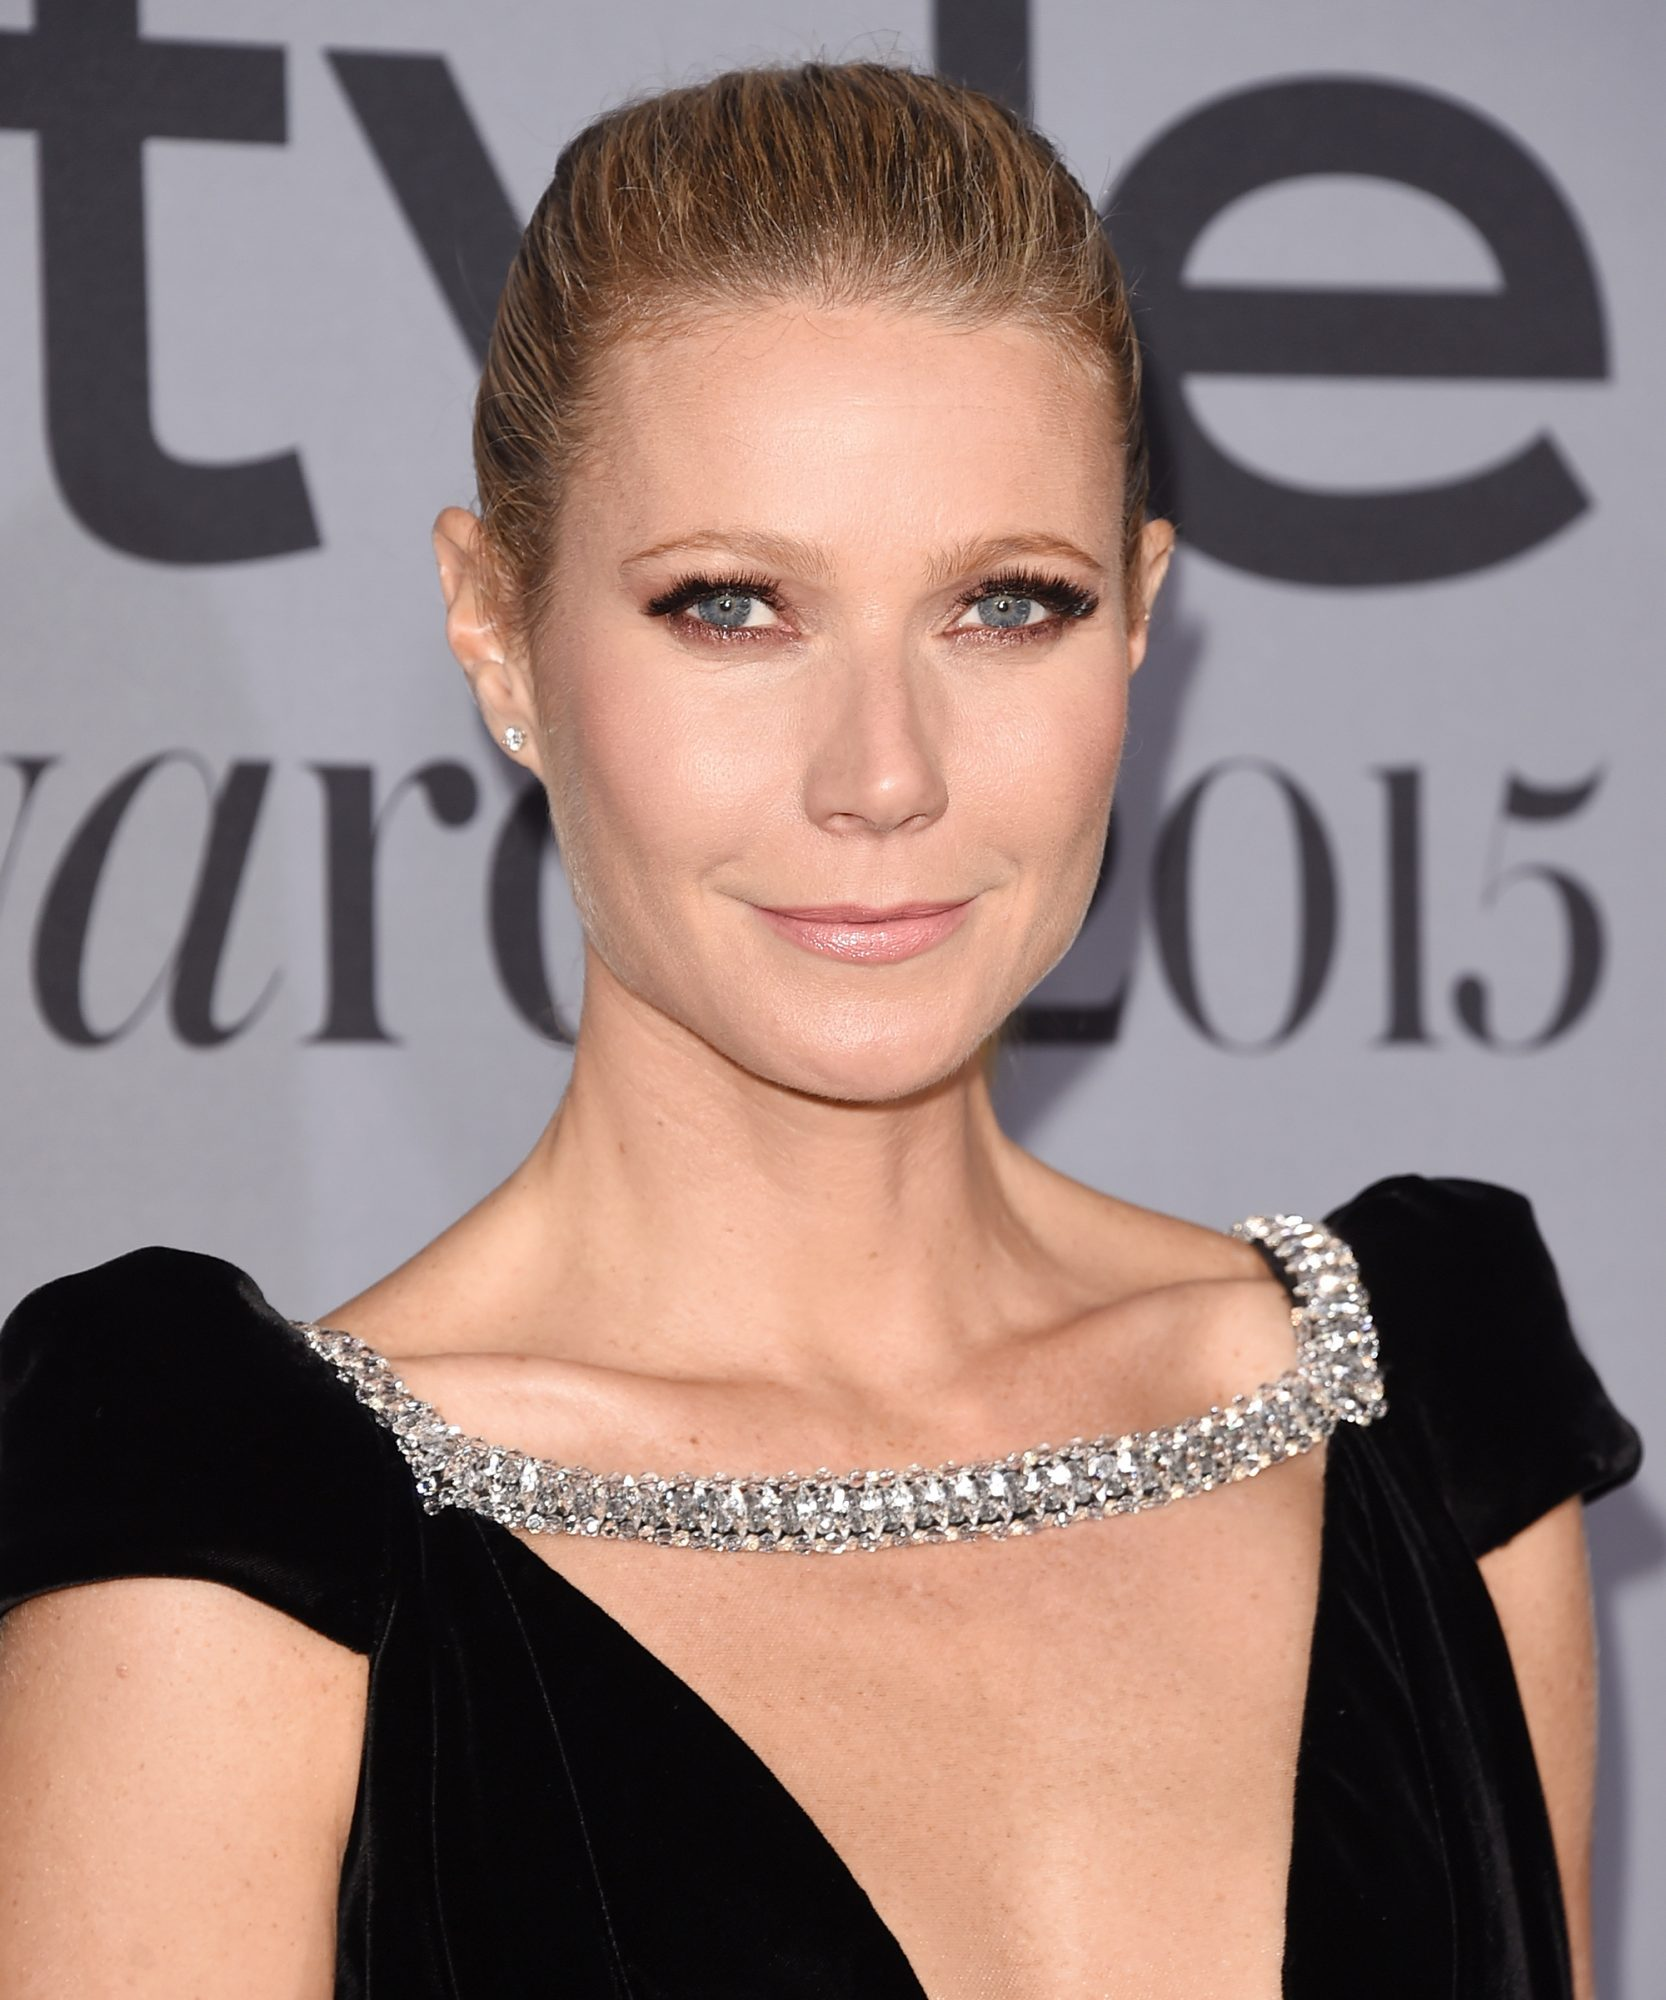 Gwyneth Paltrow Skincare Lead